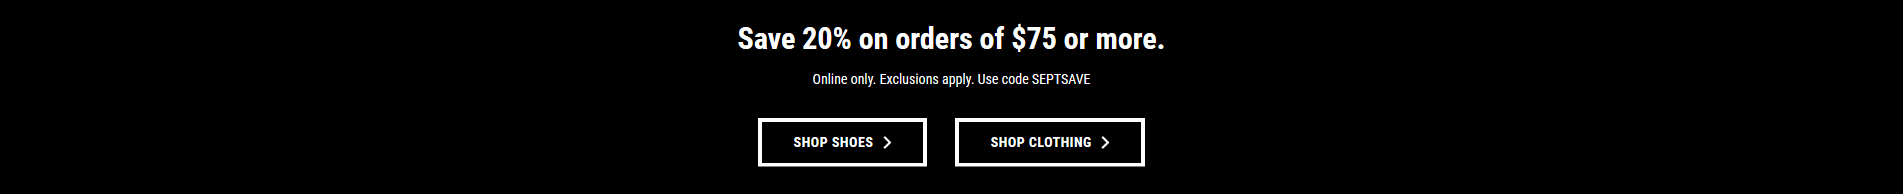 0f3753d7c501 25% Off Lady Foot Locker Promo Code   Coupon - Answer Fitness®